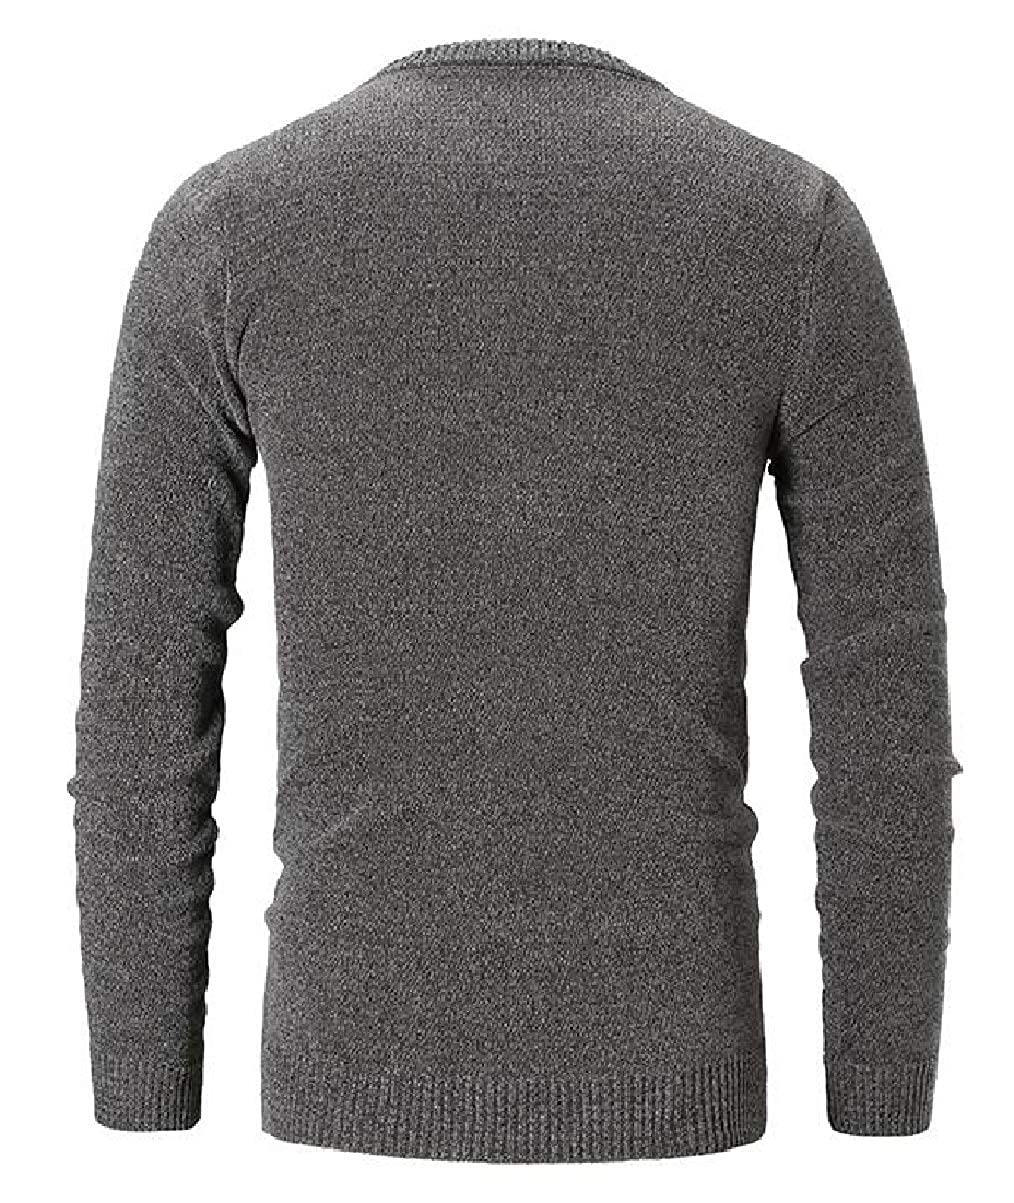 CBTLVSN Mens Casual Round Neck Knit Pullover Sweater Knitwear